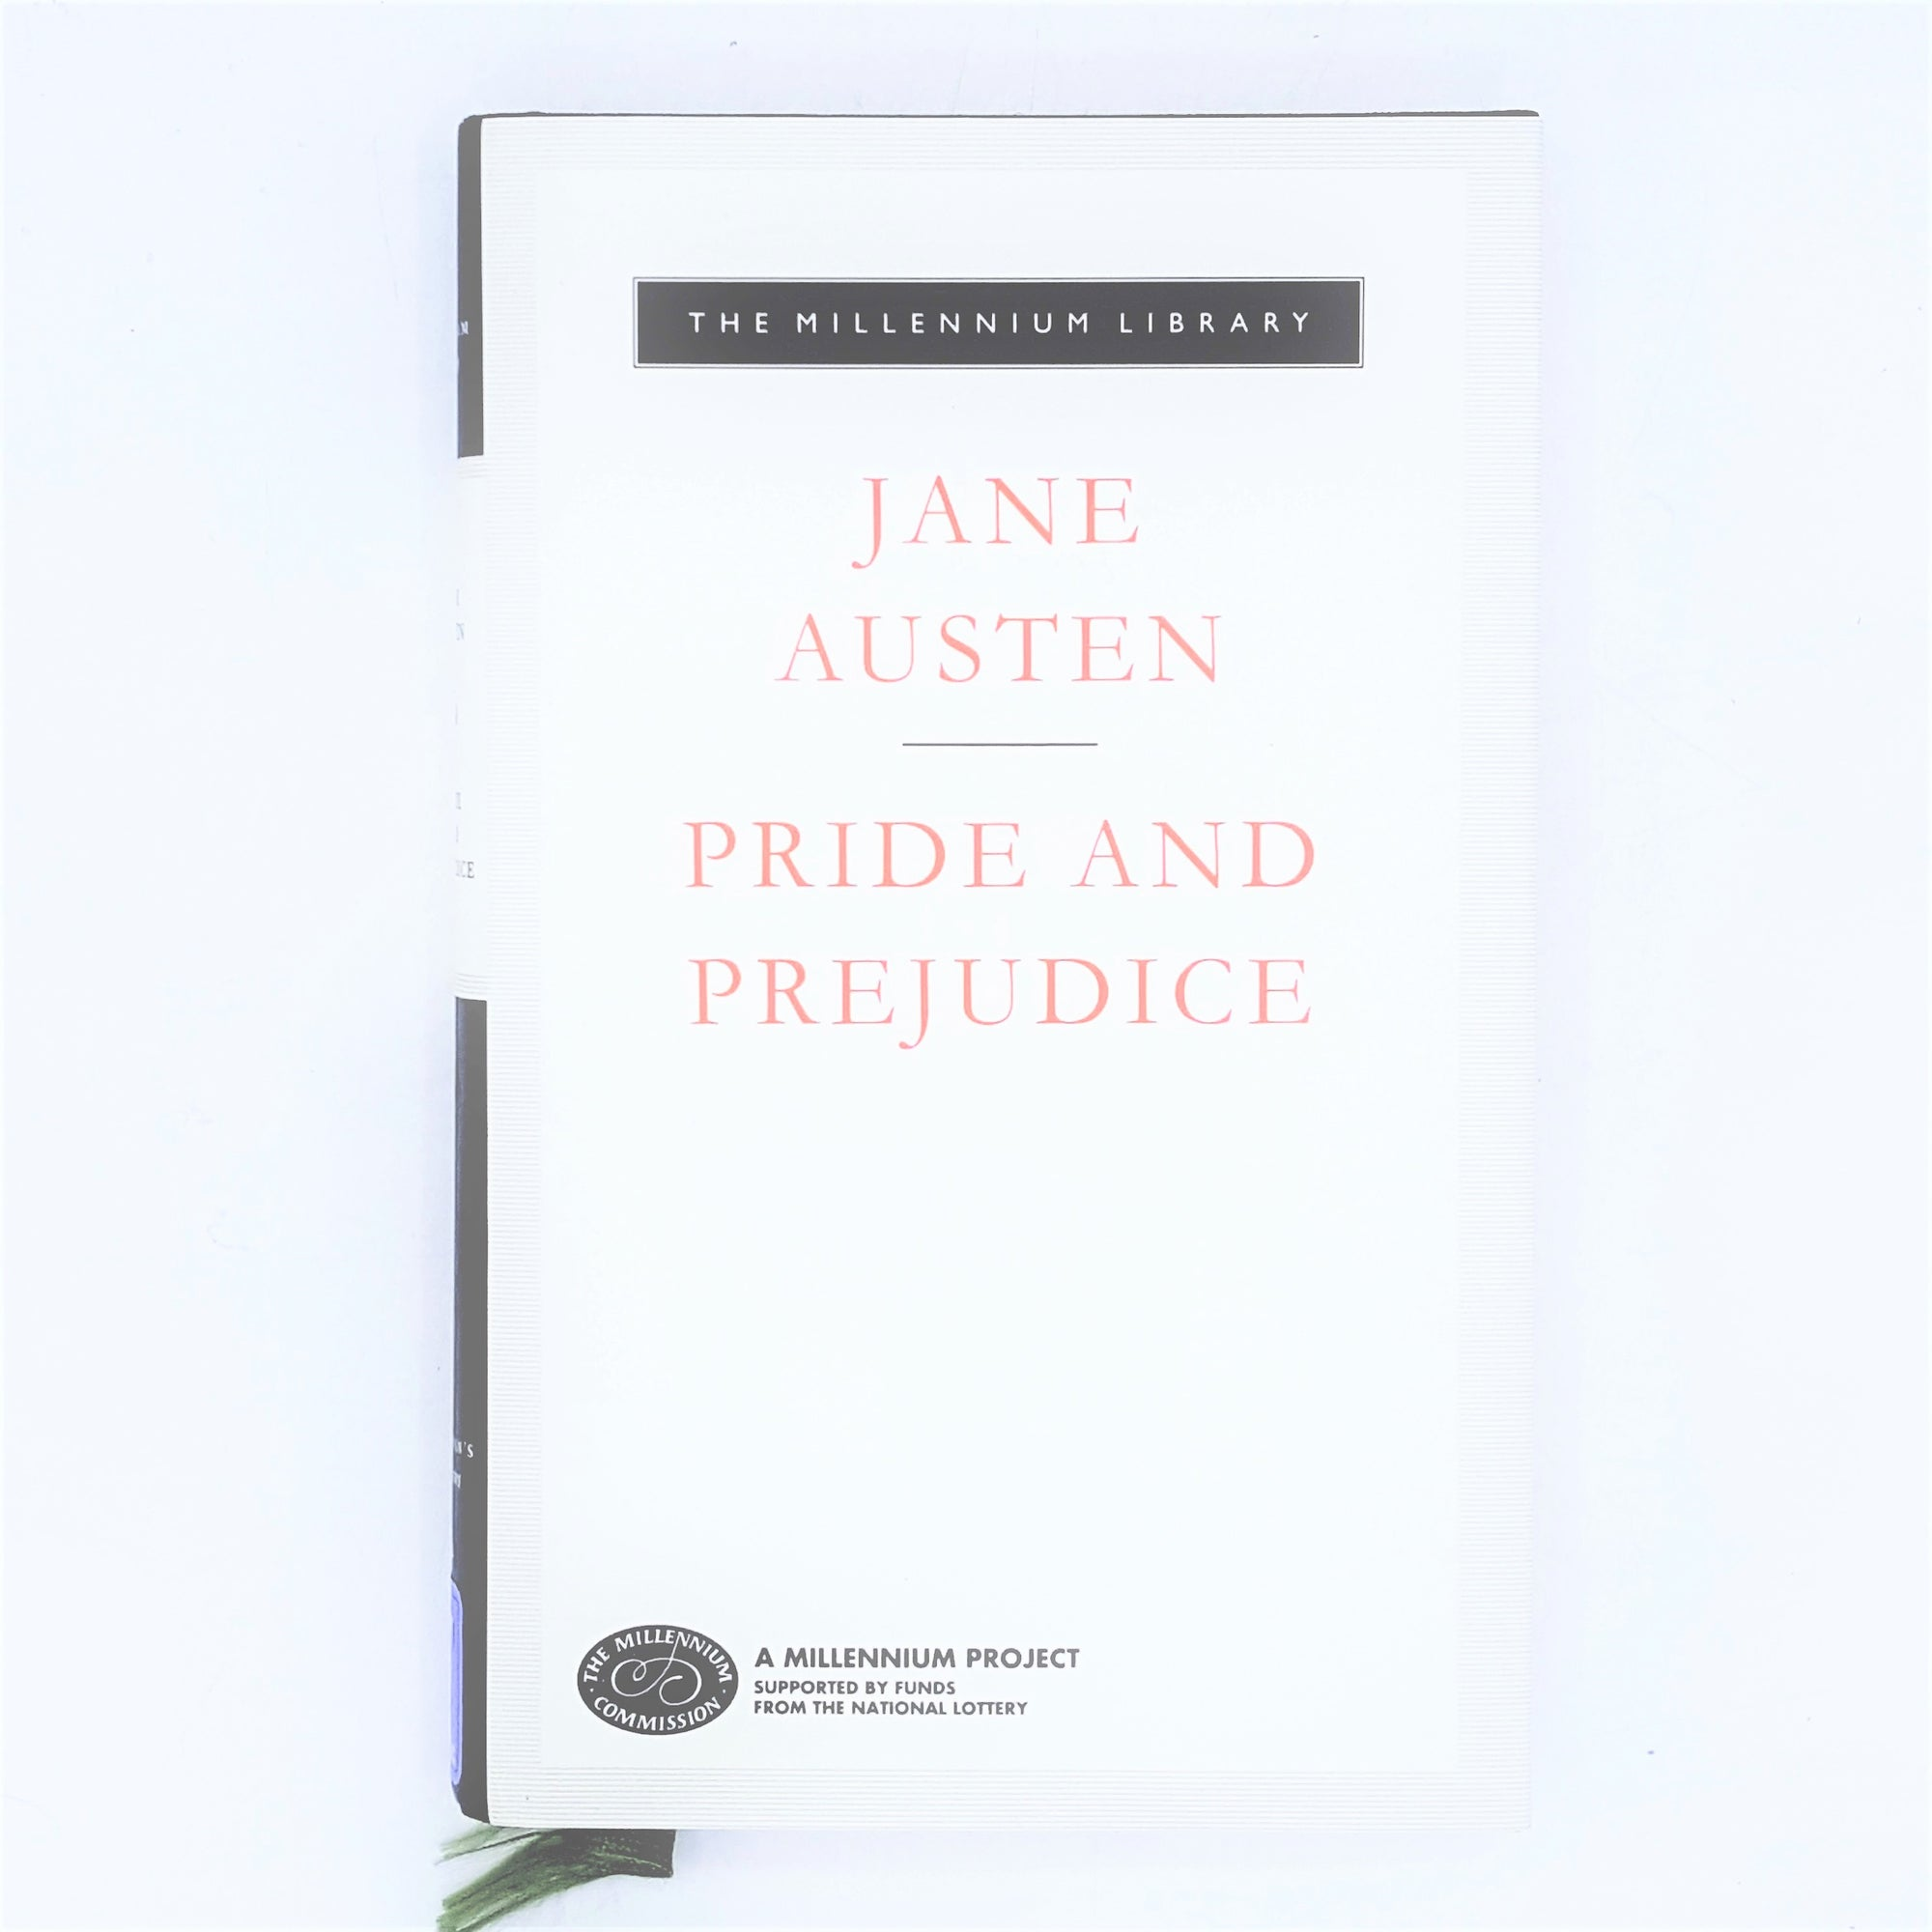 Jane Austen's Pride and Prejudice Millenium Library Edition